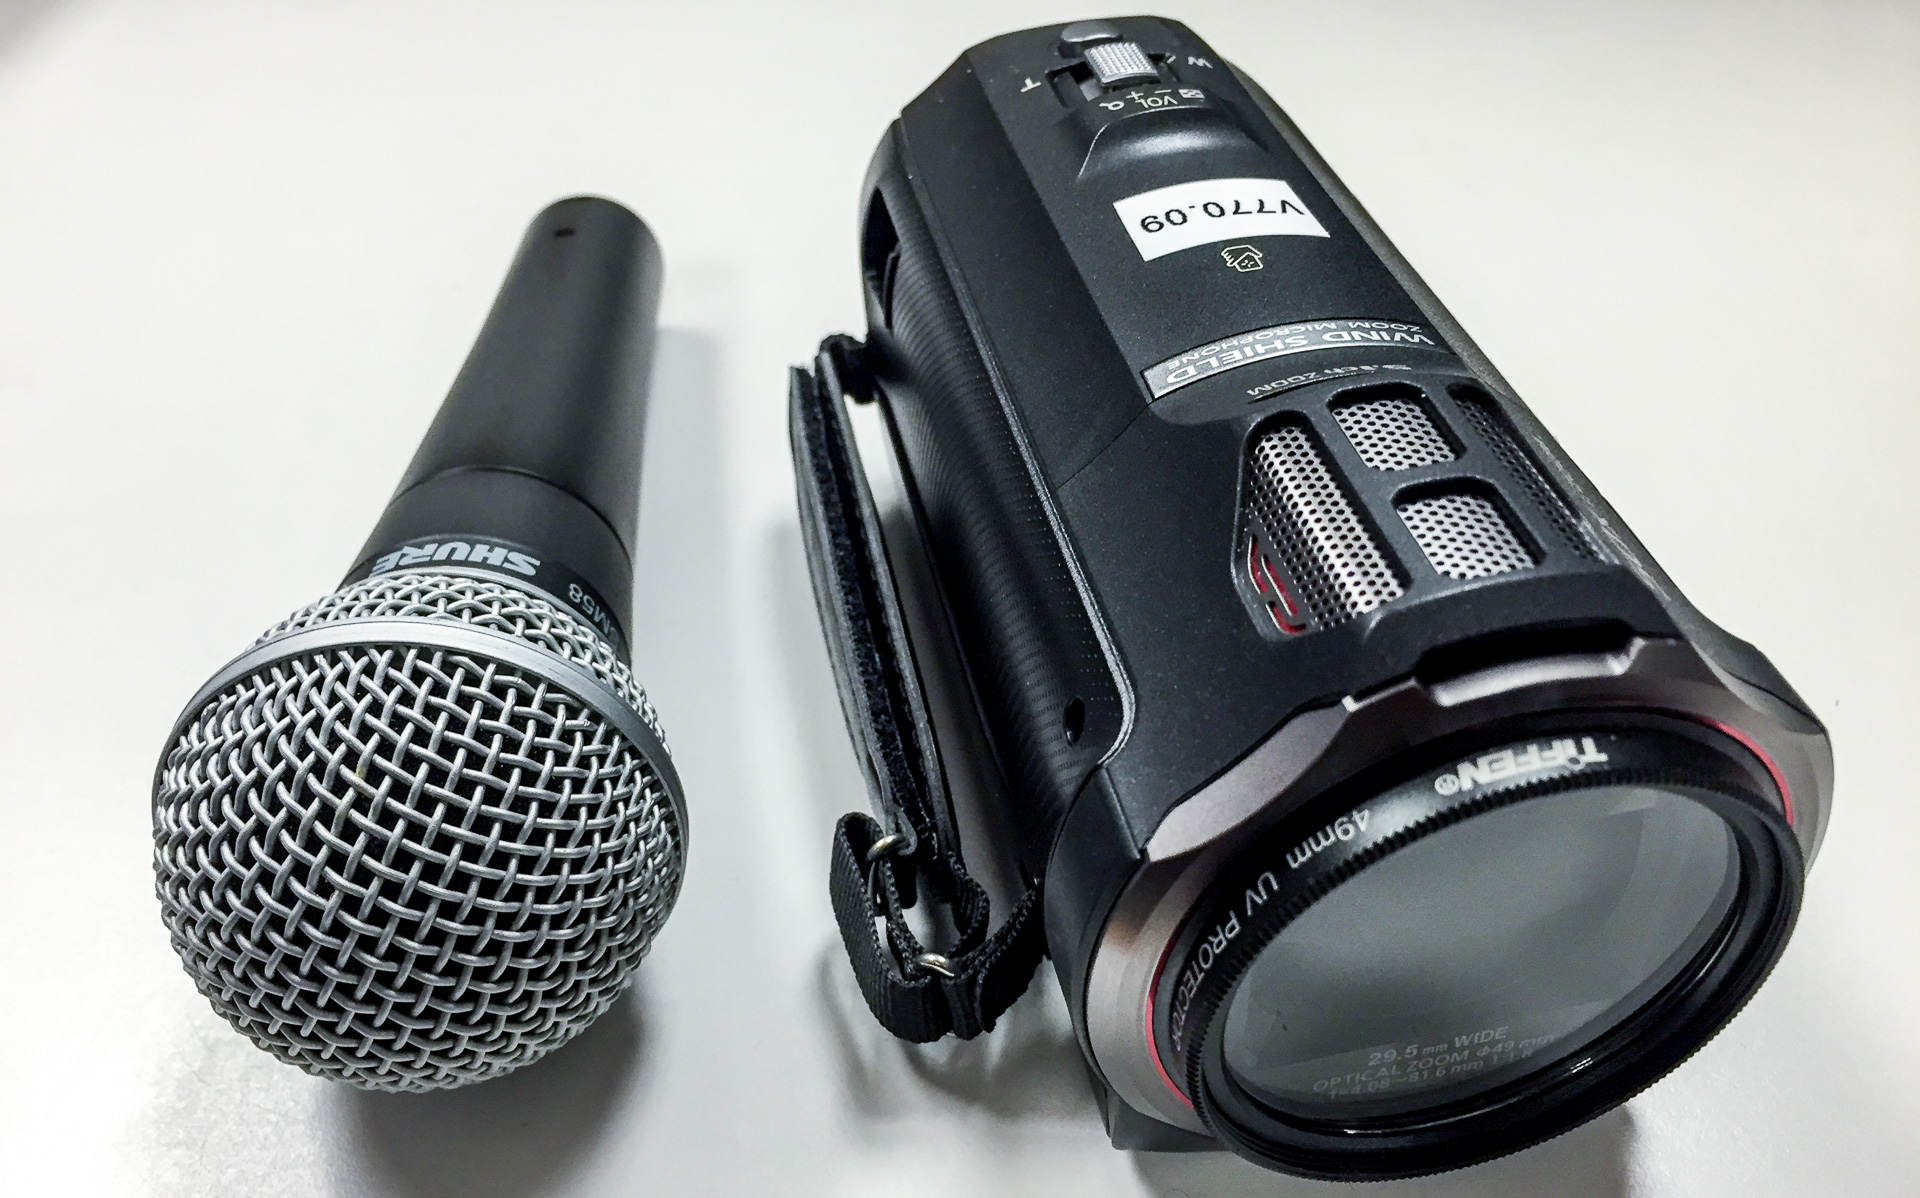 Microphone and Camcorder